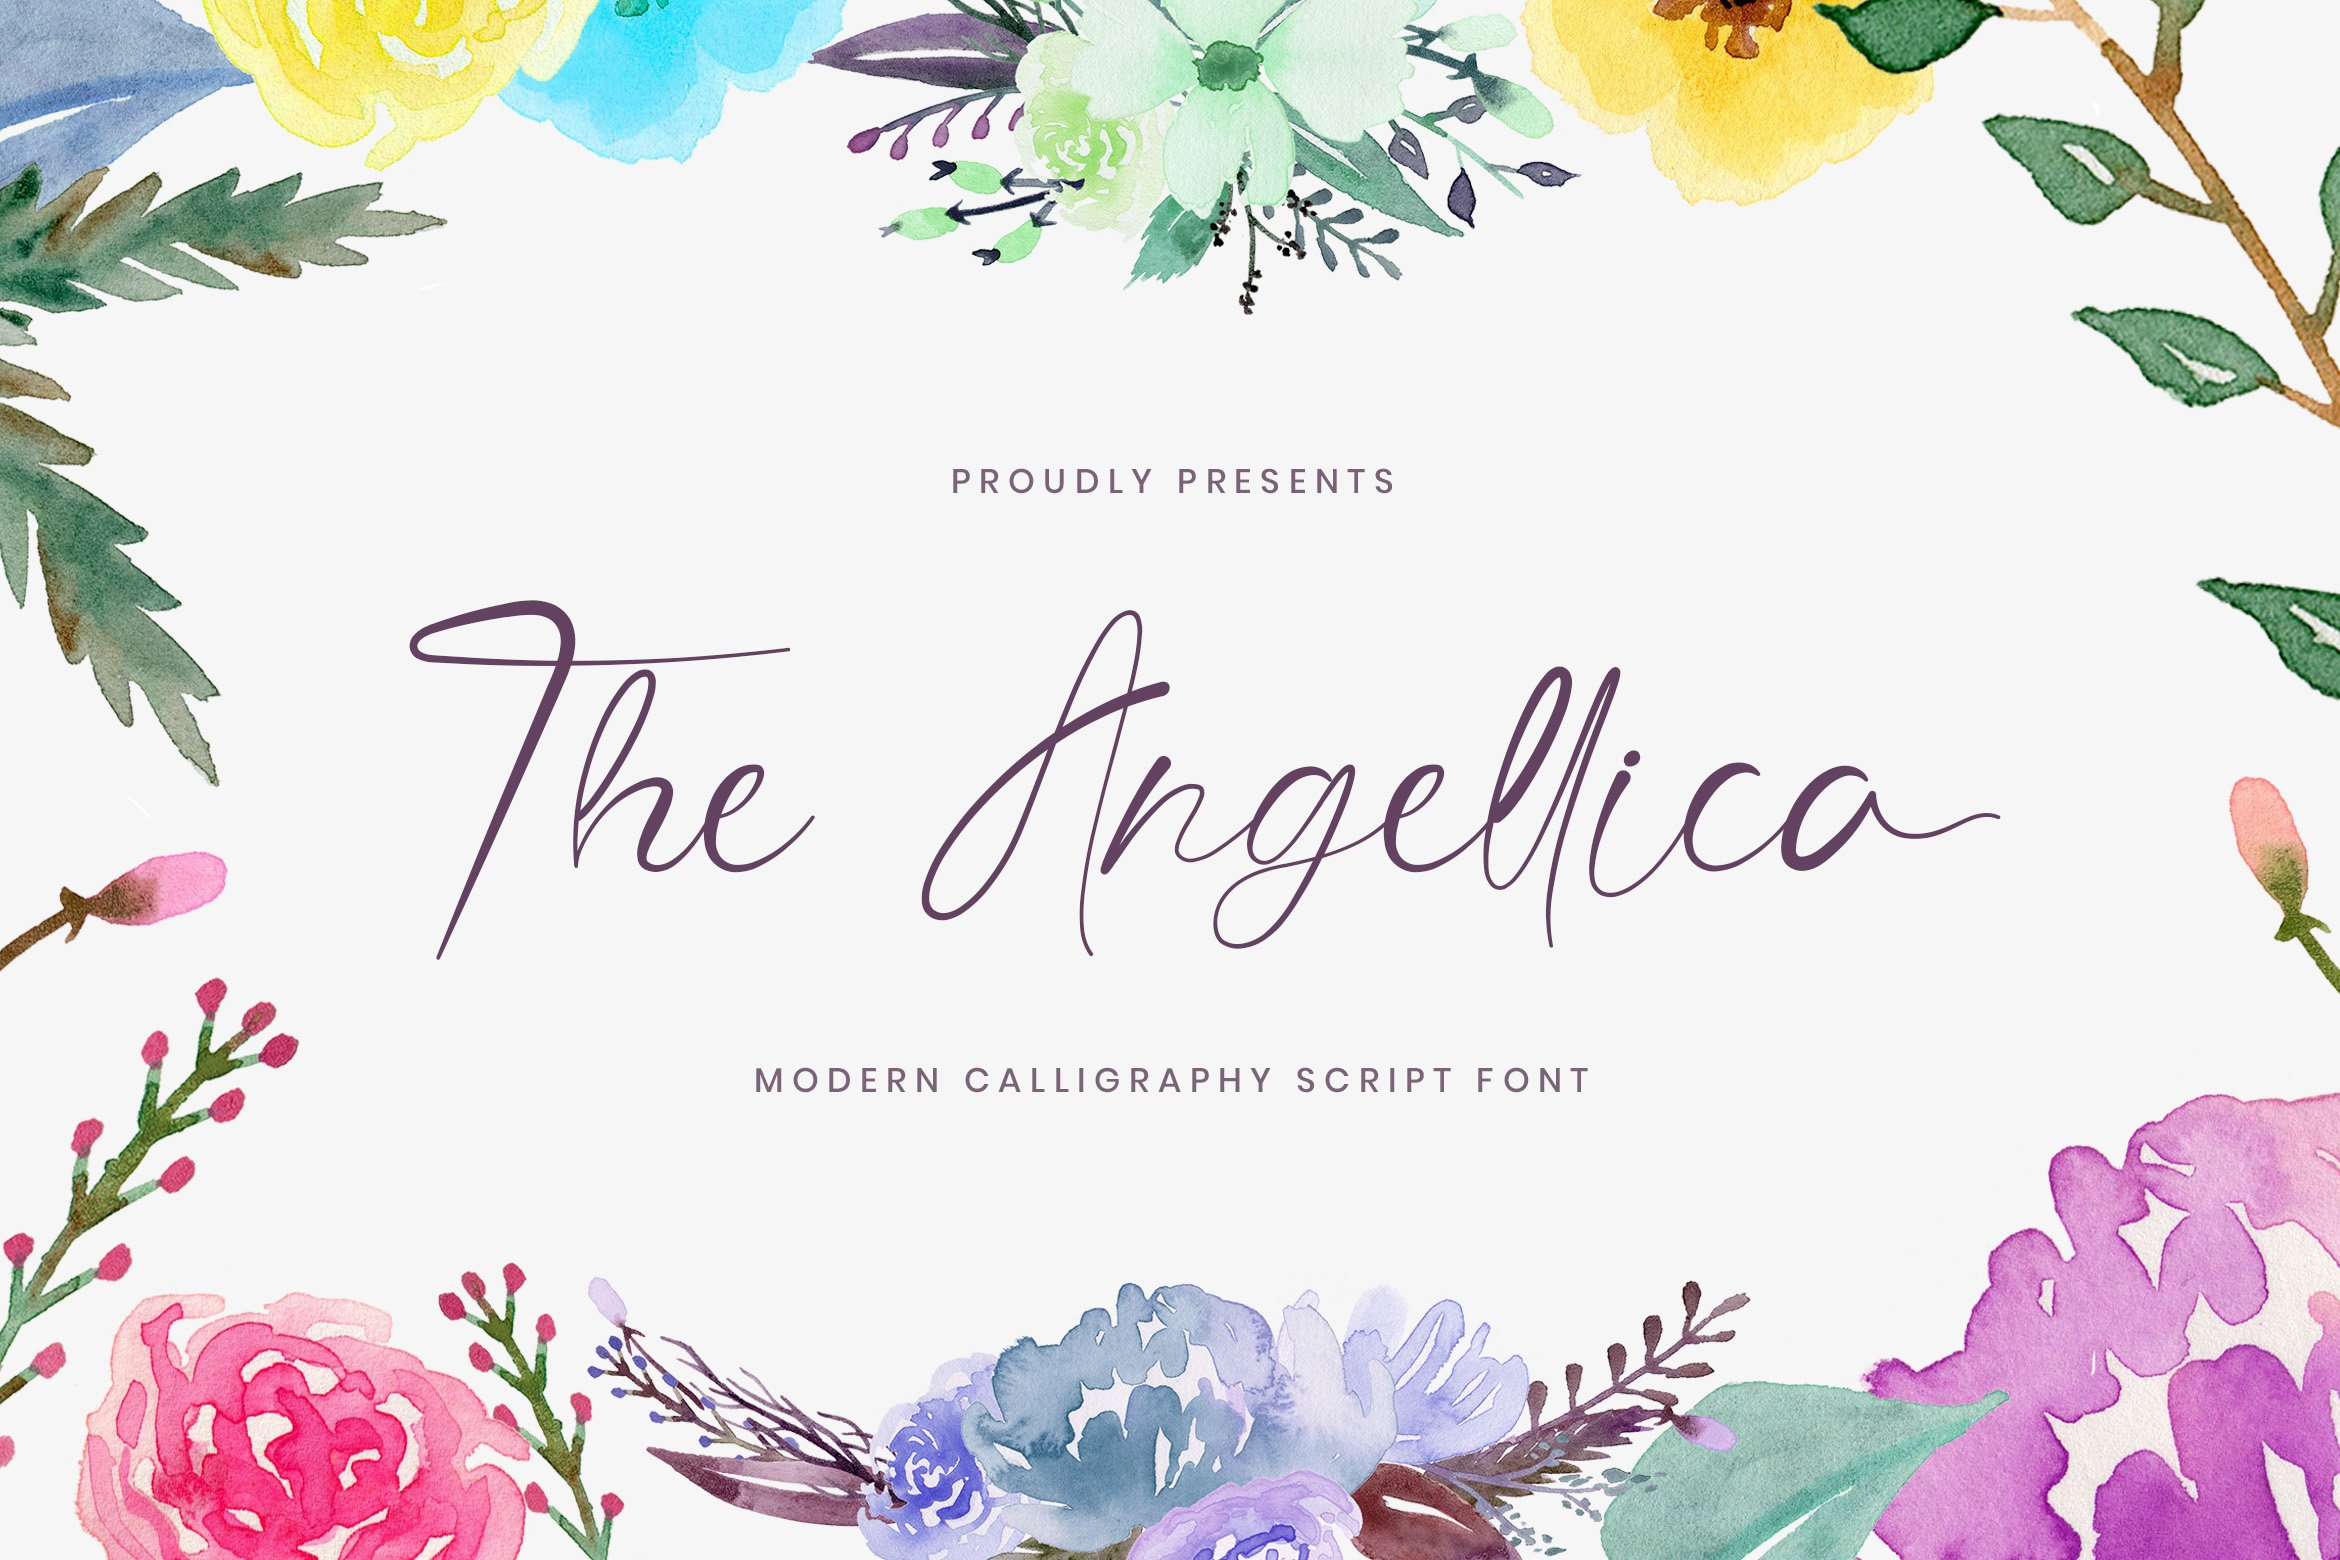 The Angellica - Modern Calligraphy Font example image 1